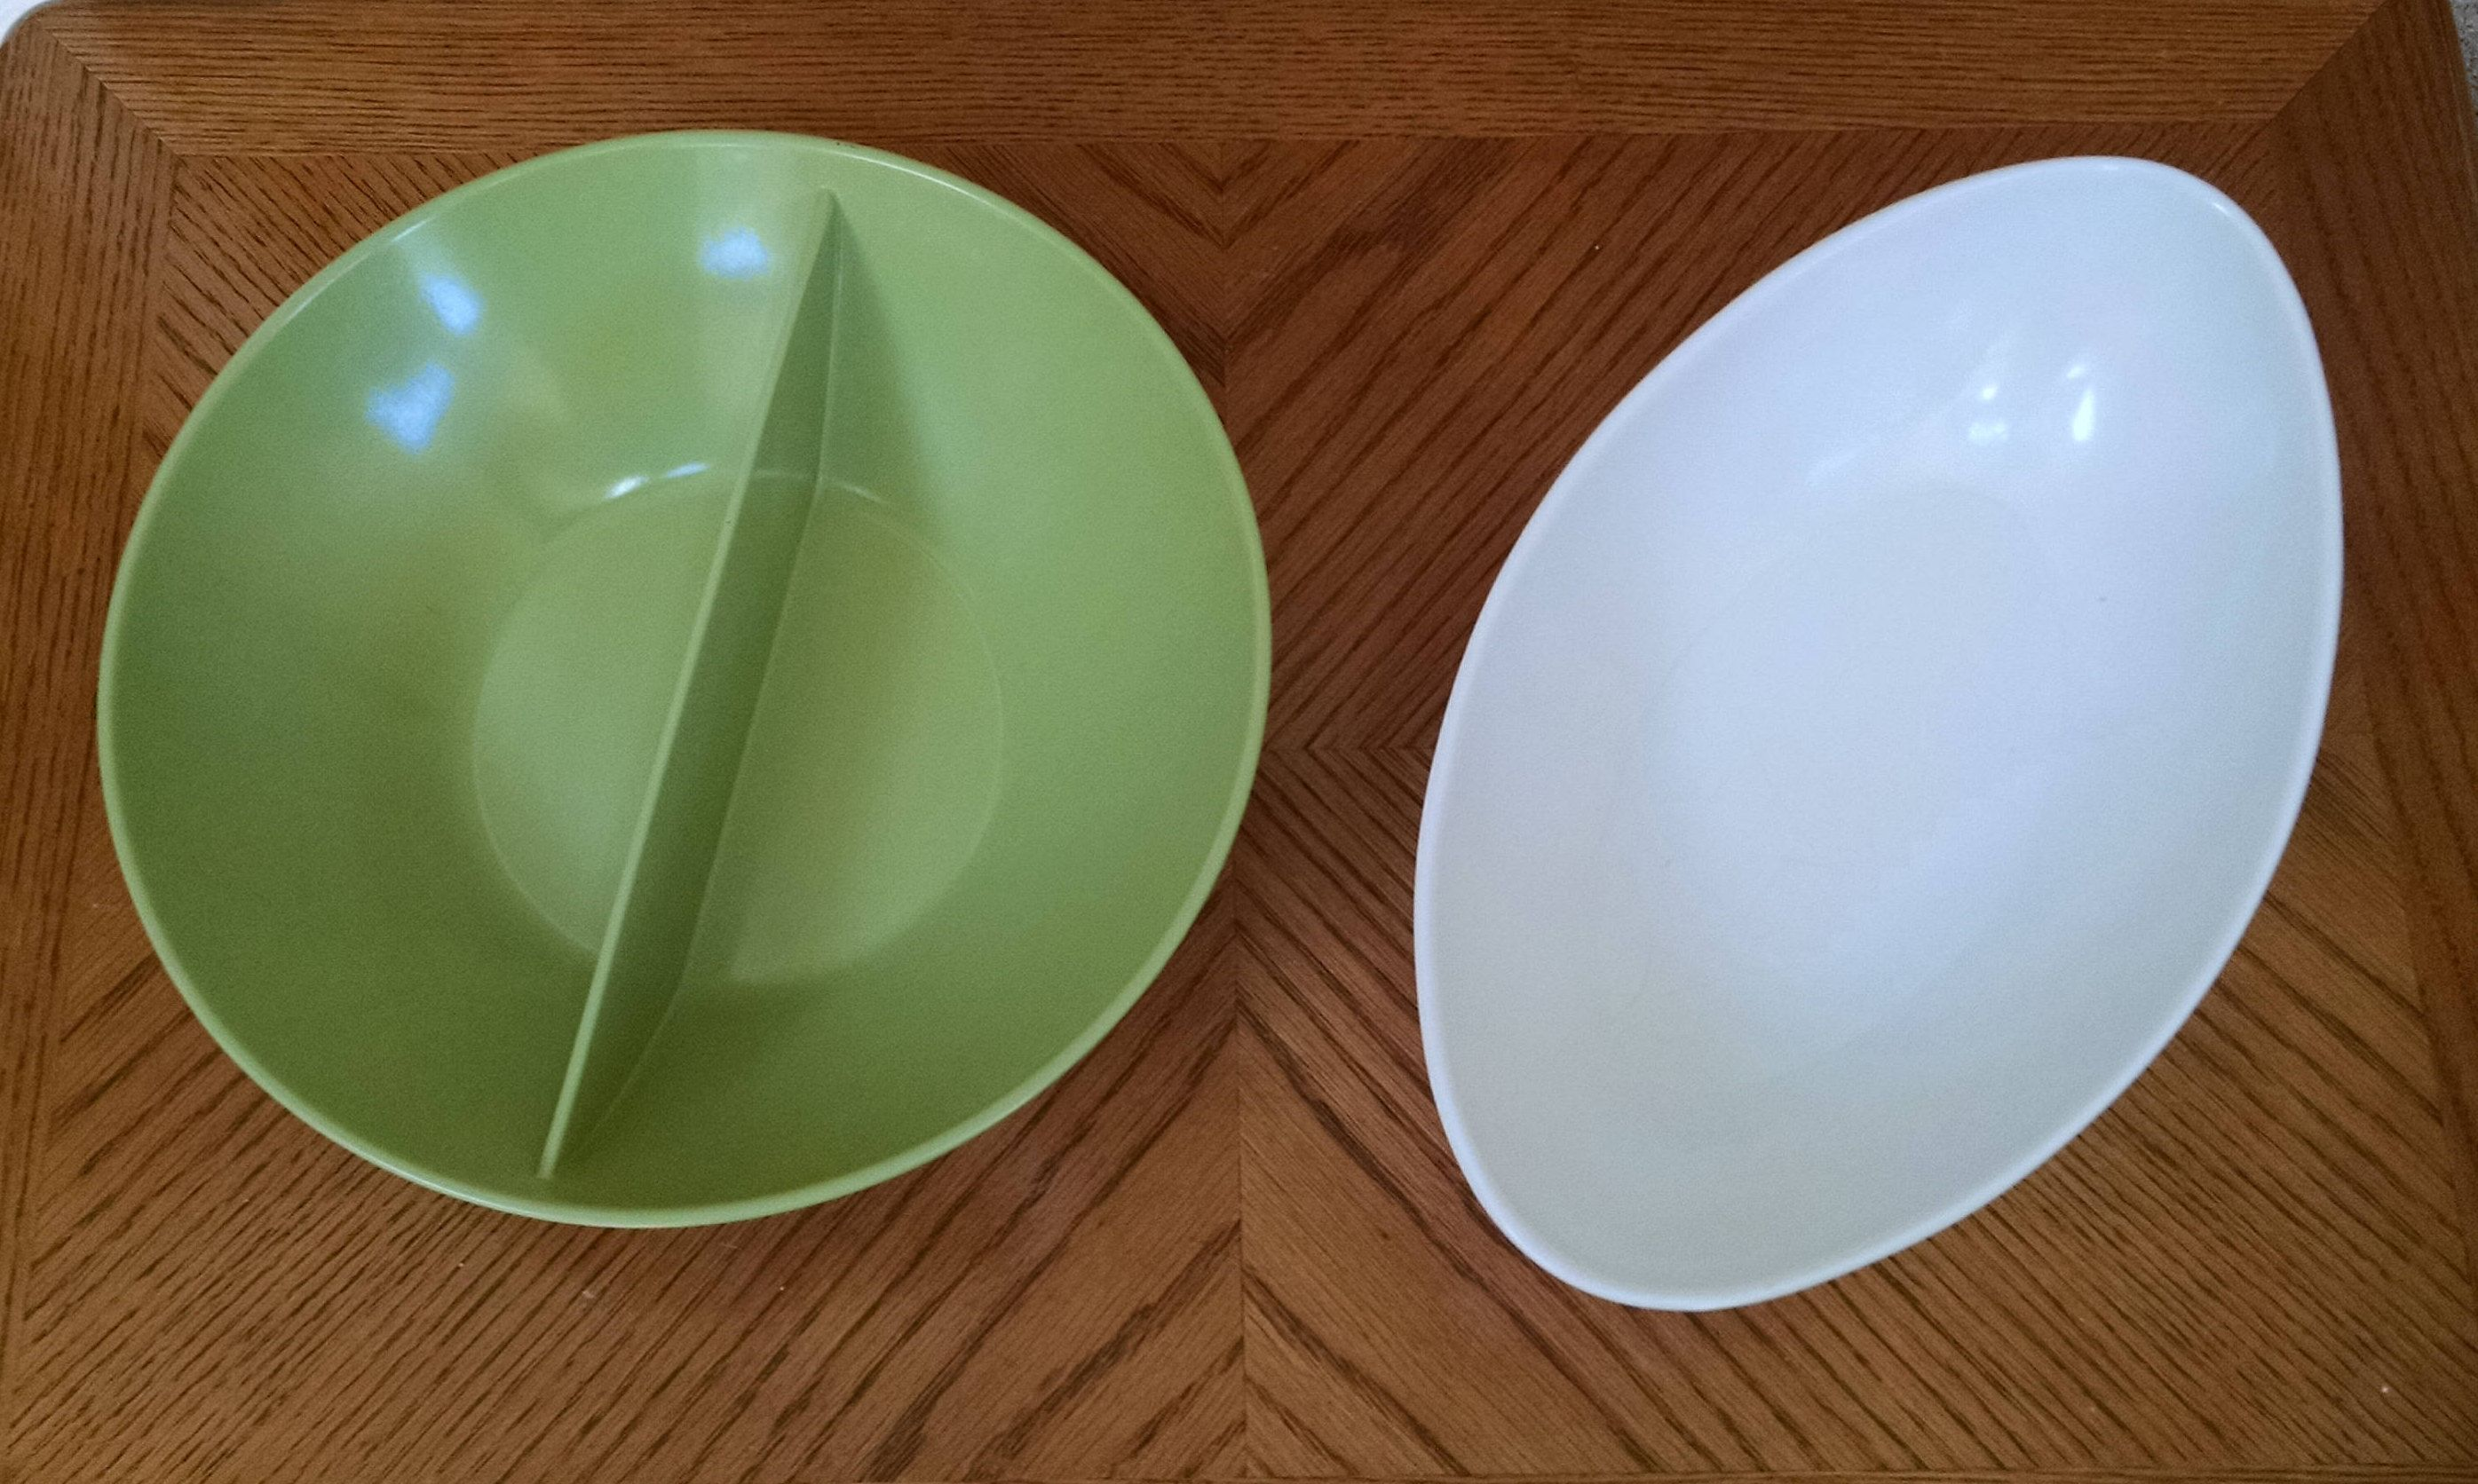 Melmac Bowls Round Green Divided Bowl And White Oval Oblong Bowl Mallo Belle Mallory Sun Valley Chicago Usa Ret Vintage Dinnerware White Bowls Bowl